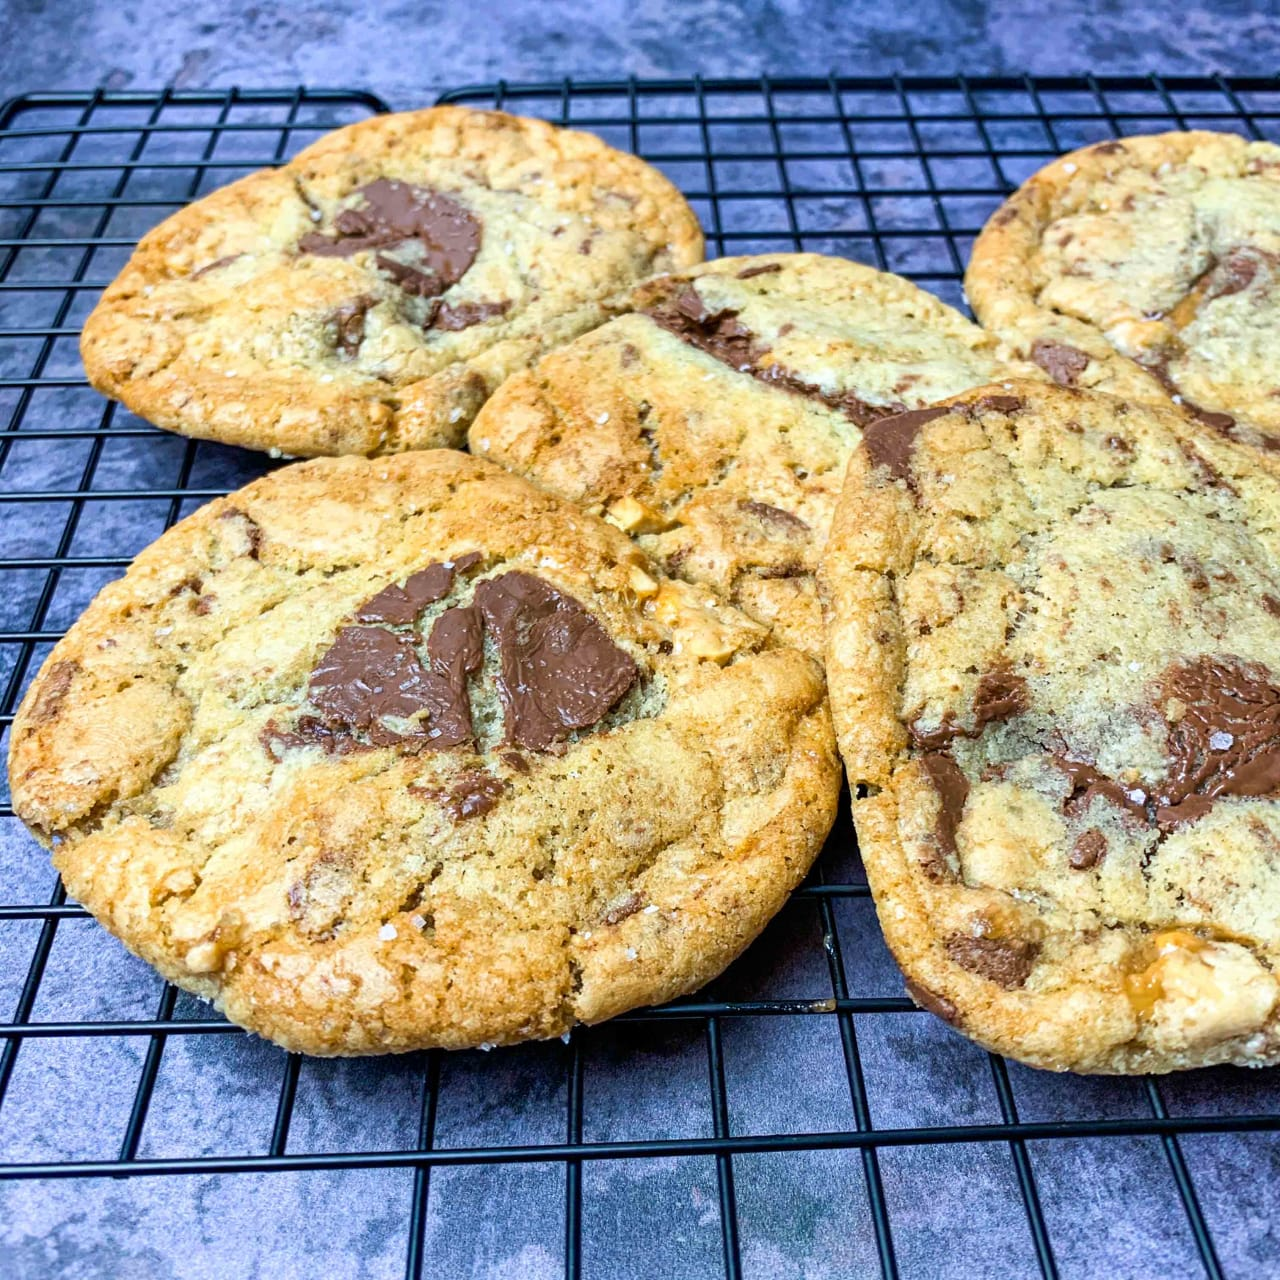 Snickers Chocolate Chip Cookies